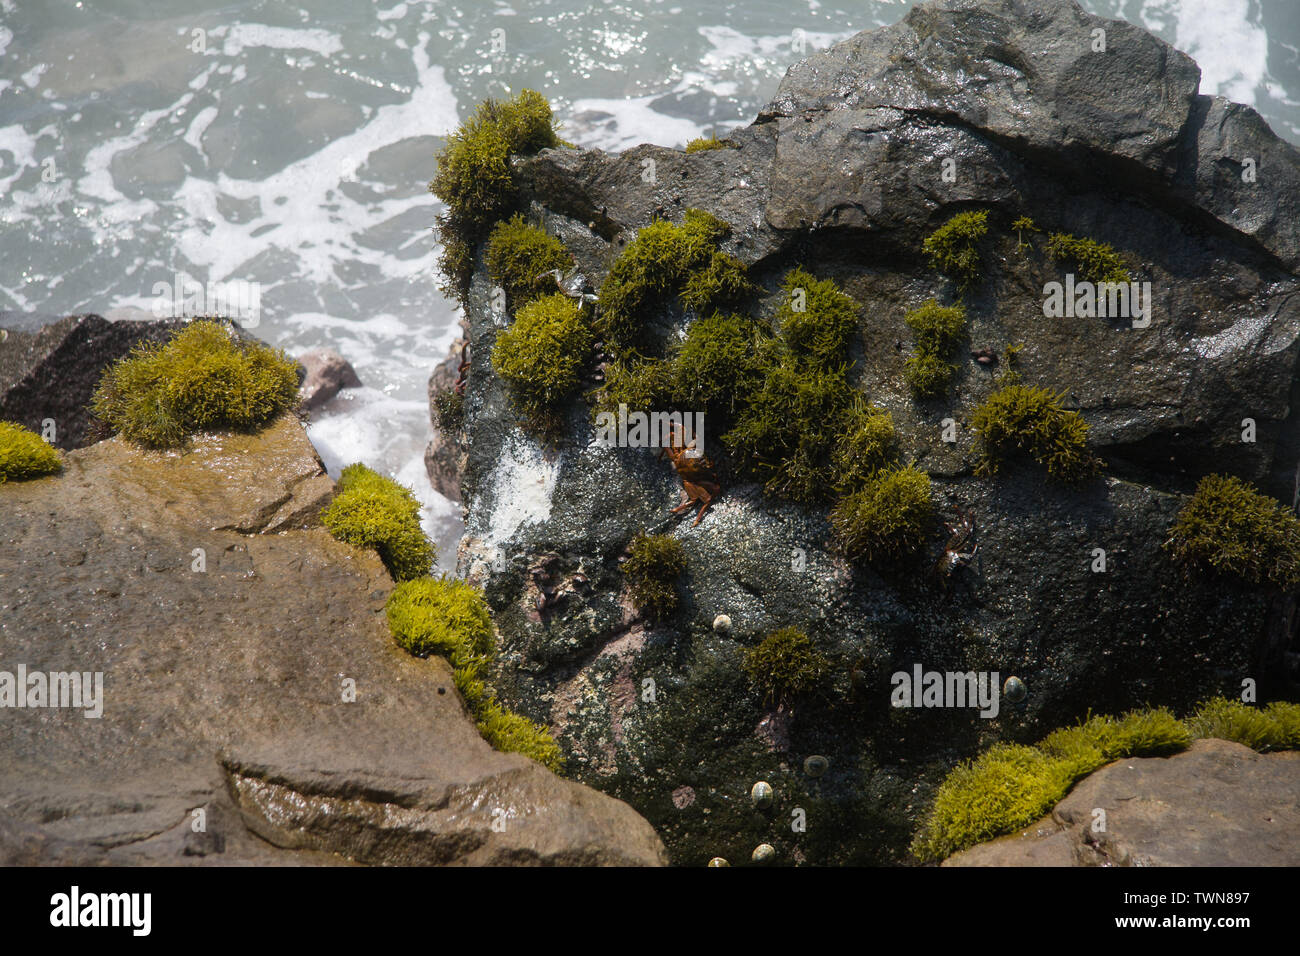 a crab on a rock in the oceean - Stock Image